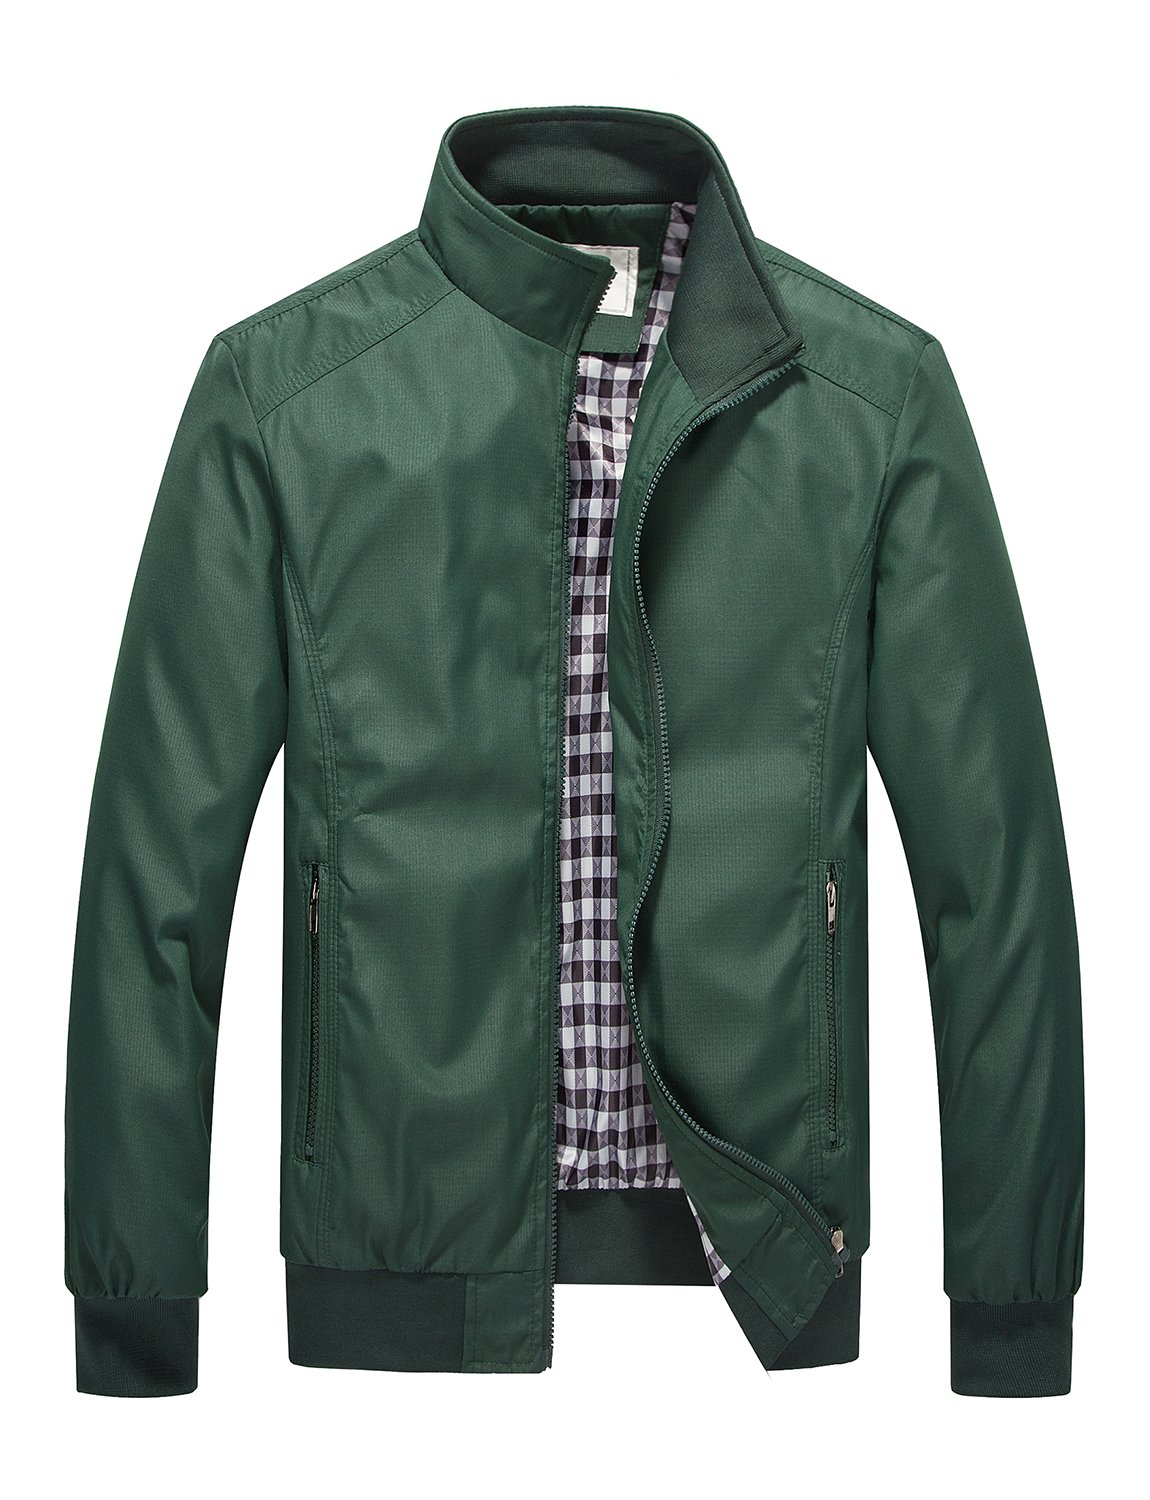 DAVID.ANN Mens Casual Jacket Outdoor Sportswear Windbreaker Lightweight Bomber Jackets and Coats,Green,XX-Large by DAVID.ANN